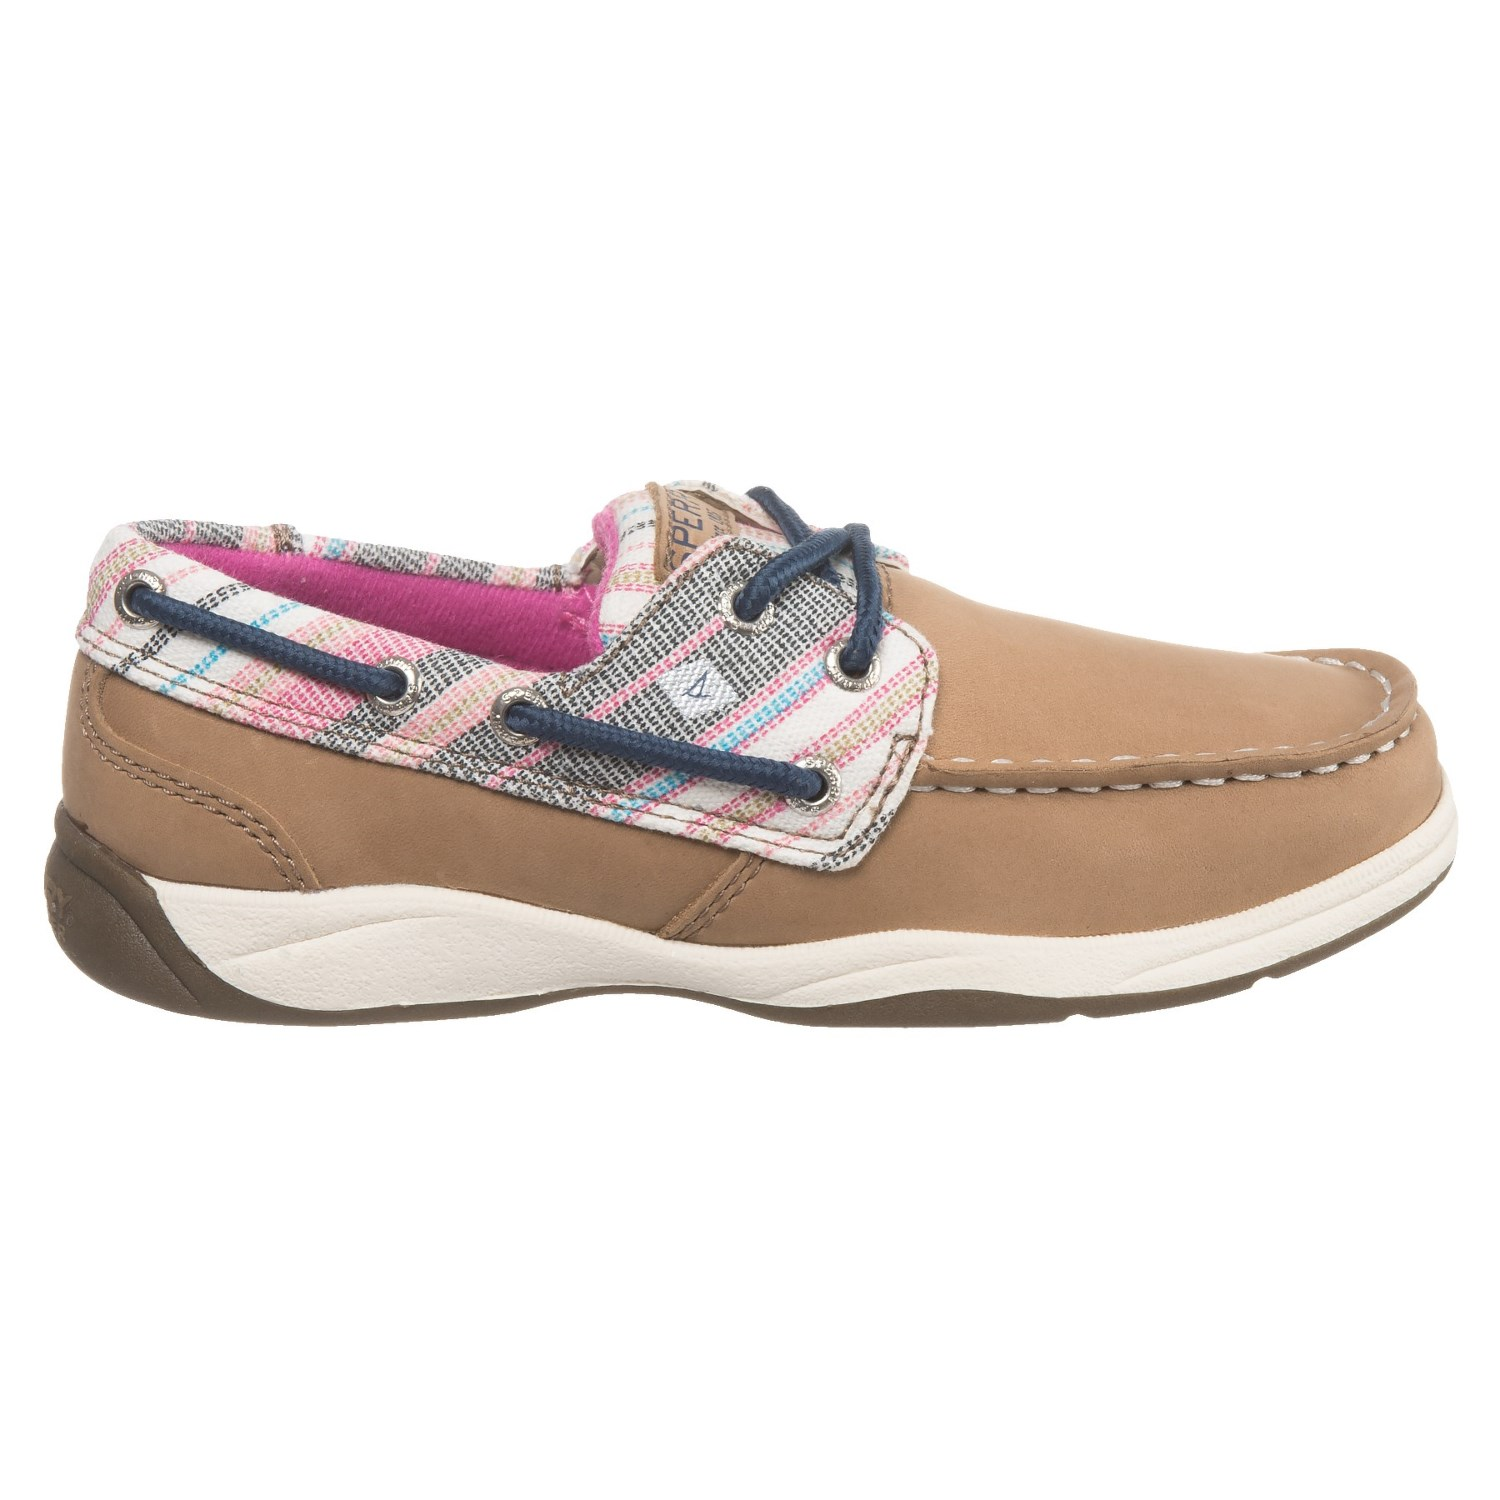 Sperry Intrepid Boat Shoes For Girls